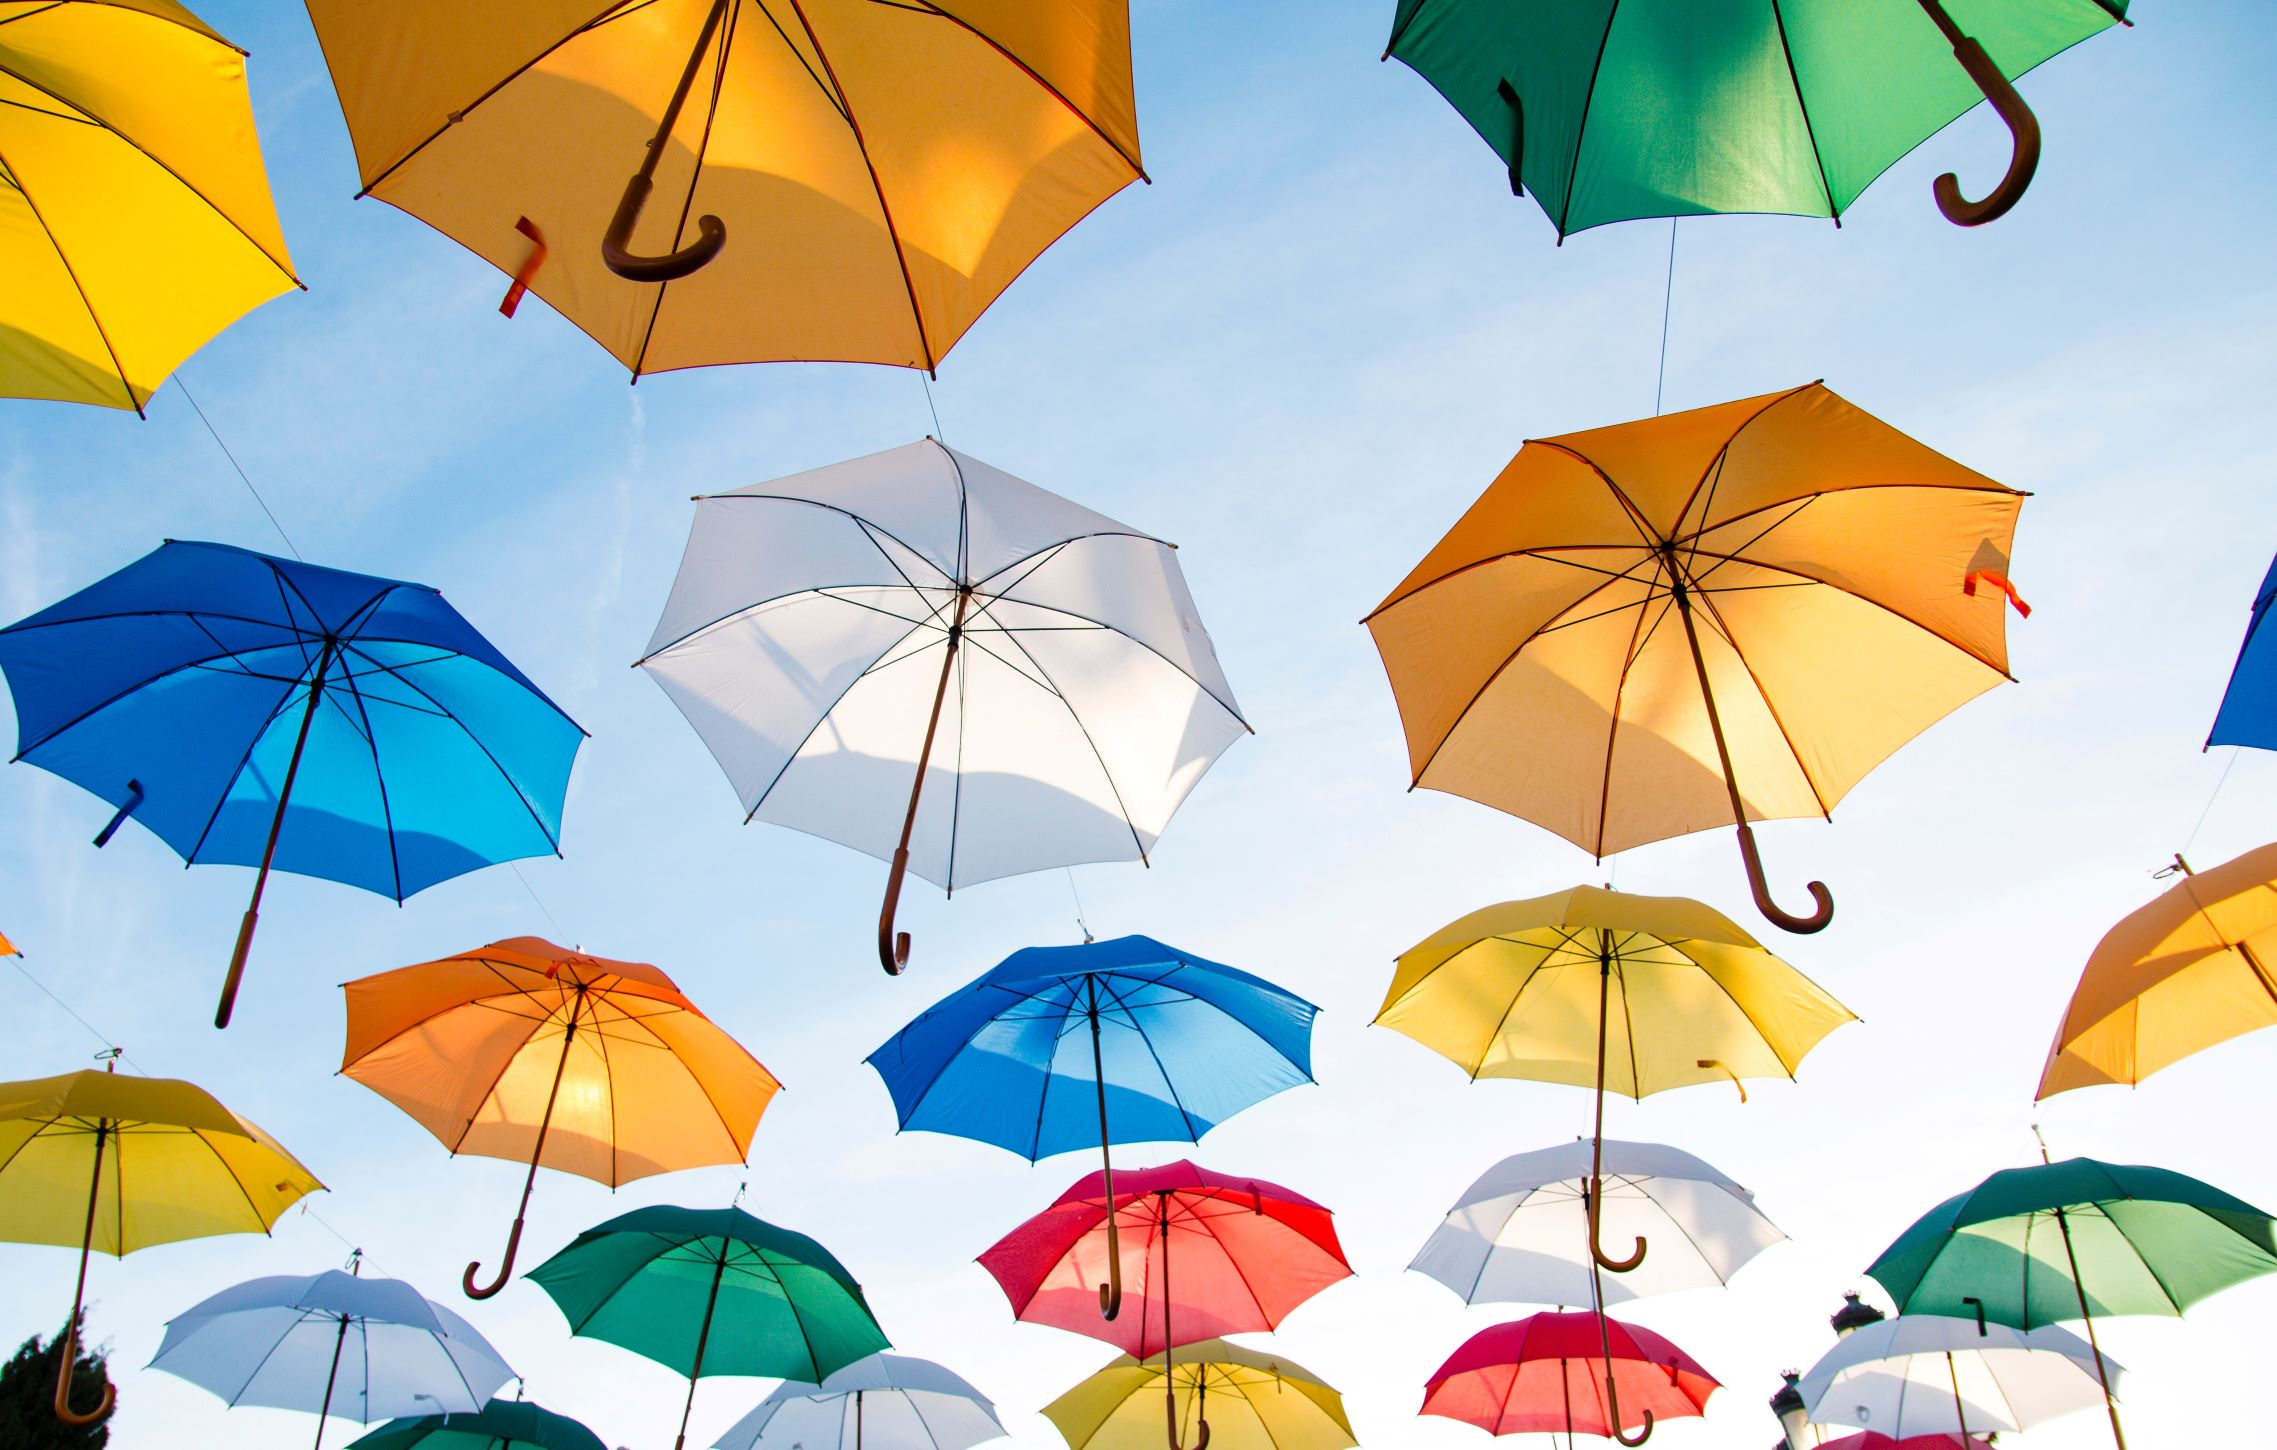 life insurance planning financial umbrellas policy